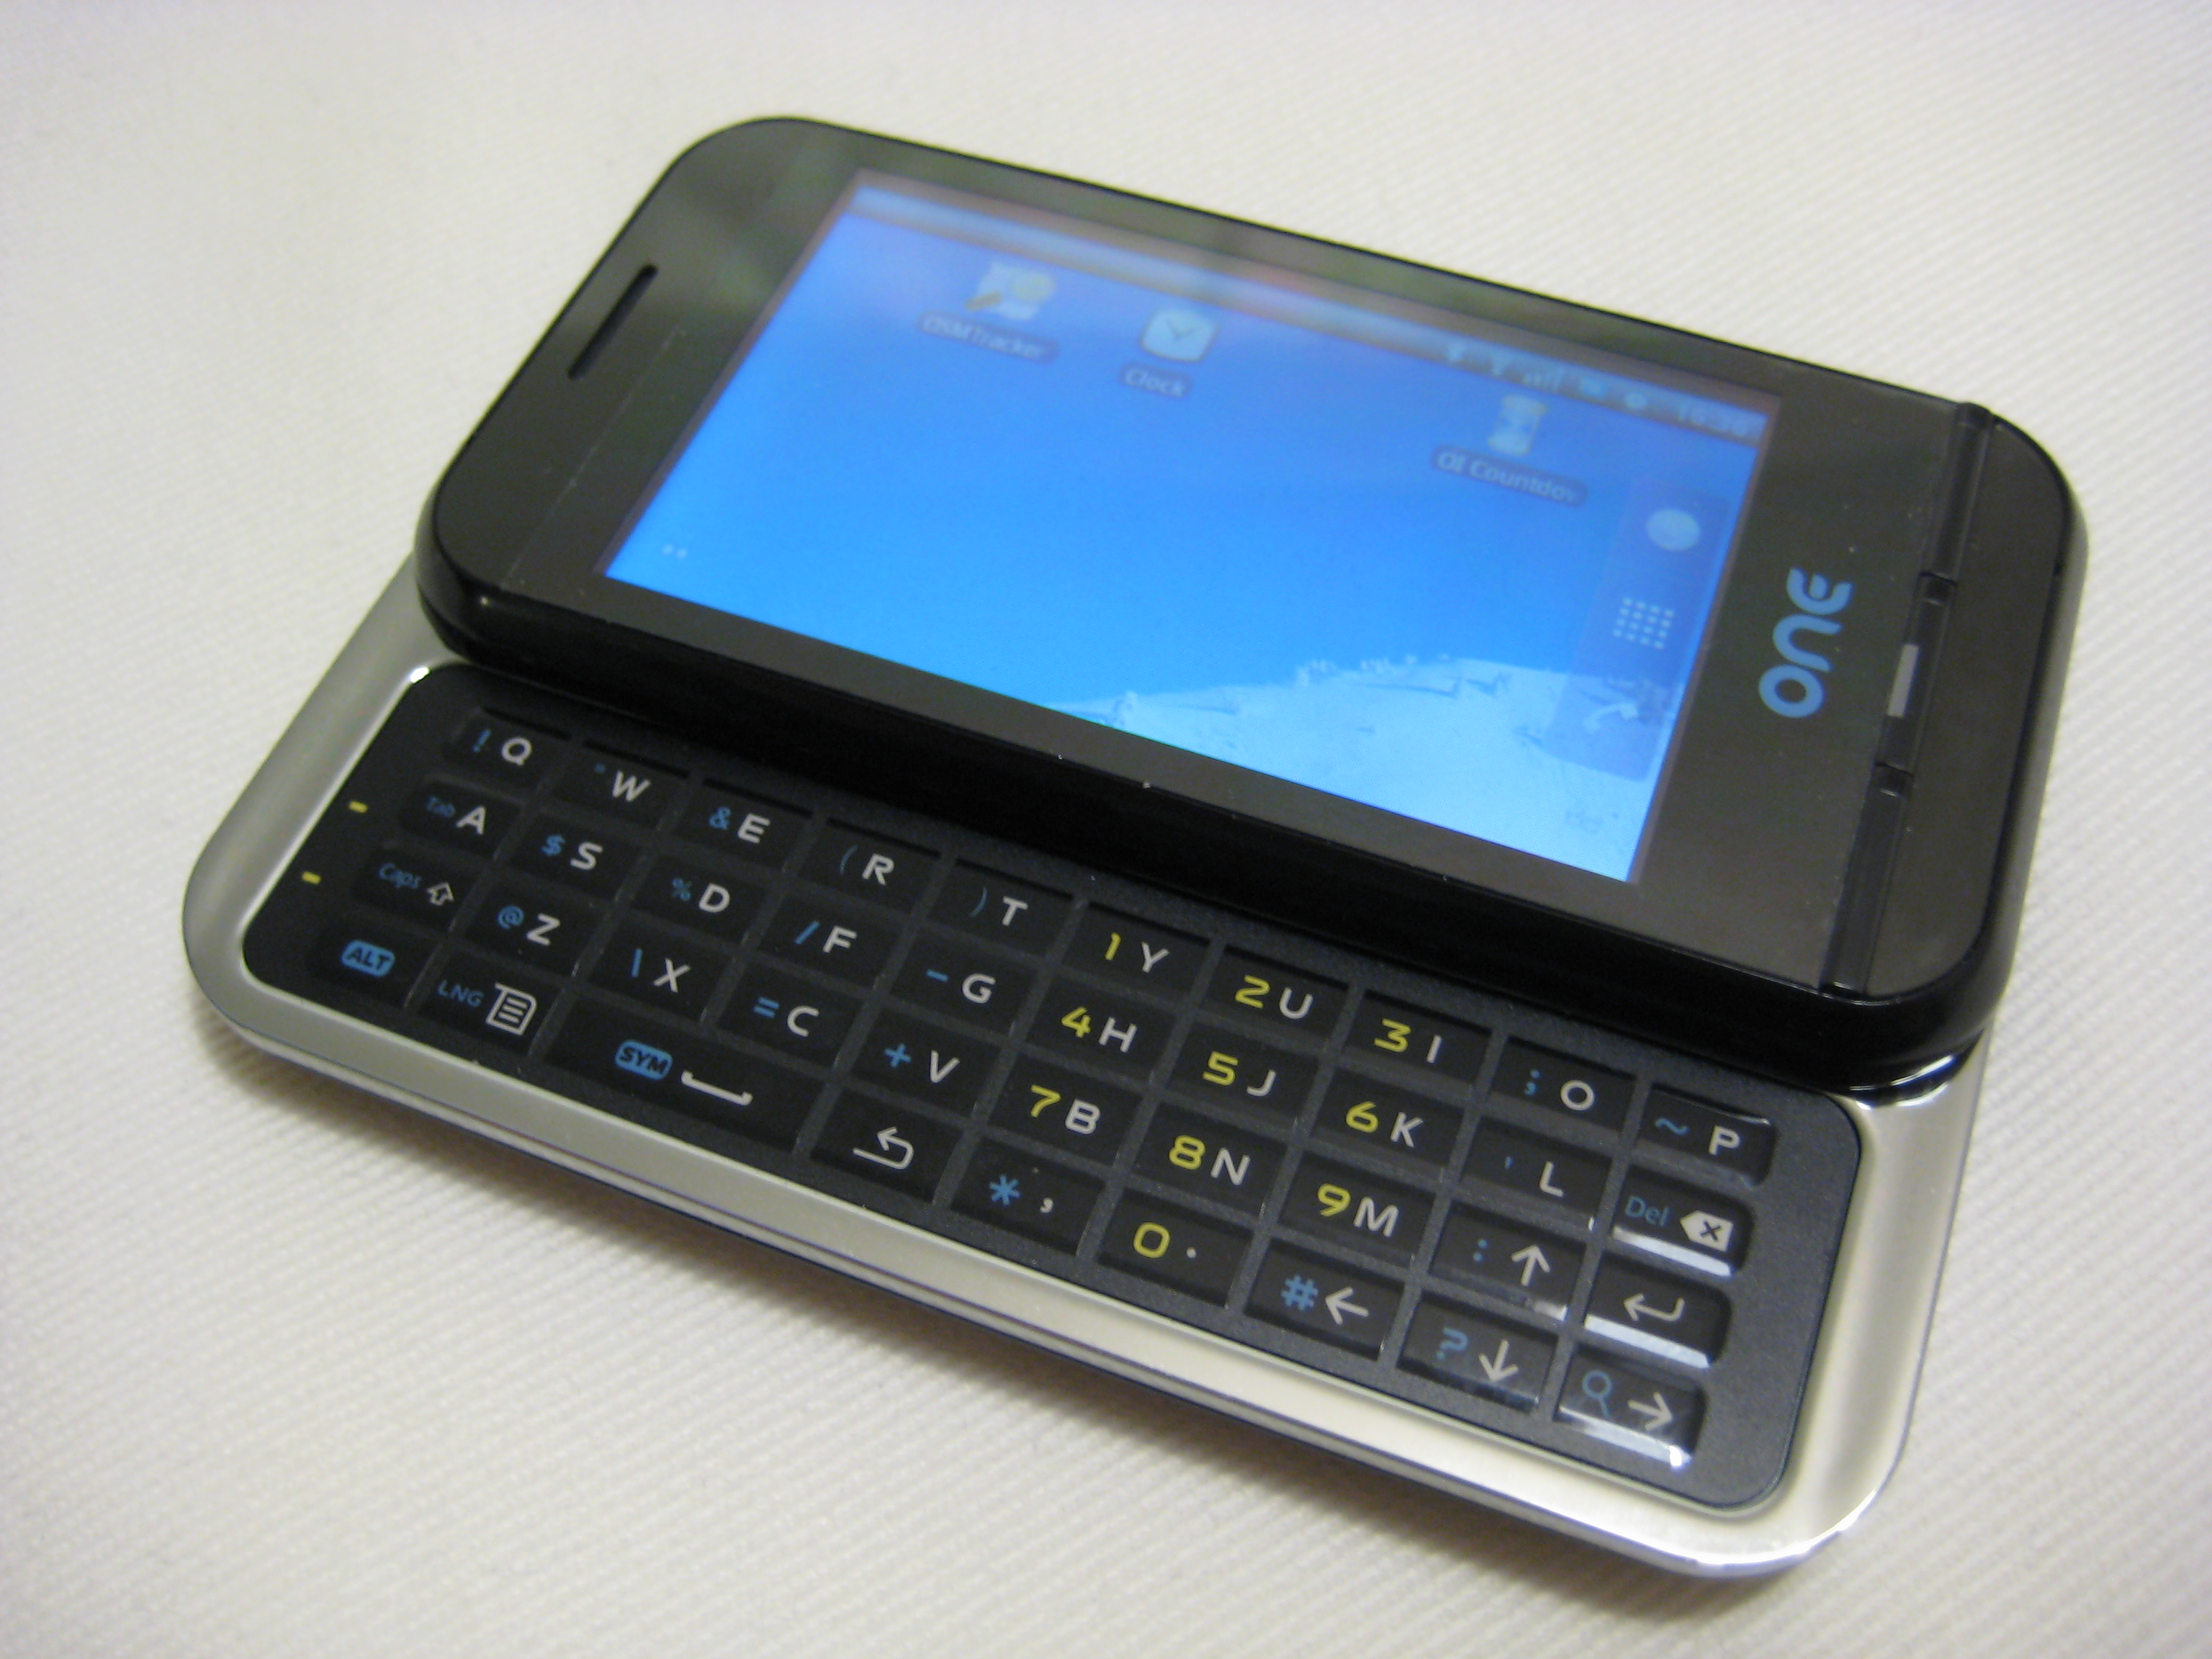 One of Geeks'Phone, The First Mobile with Android Spanish